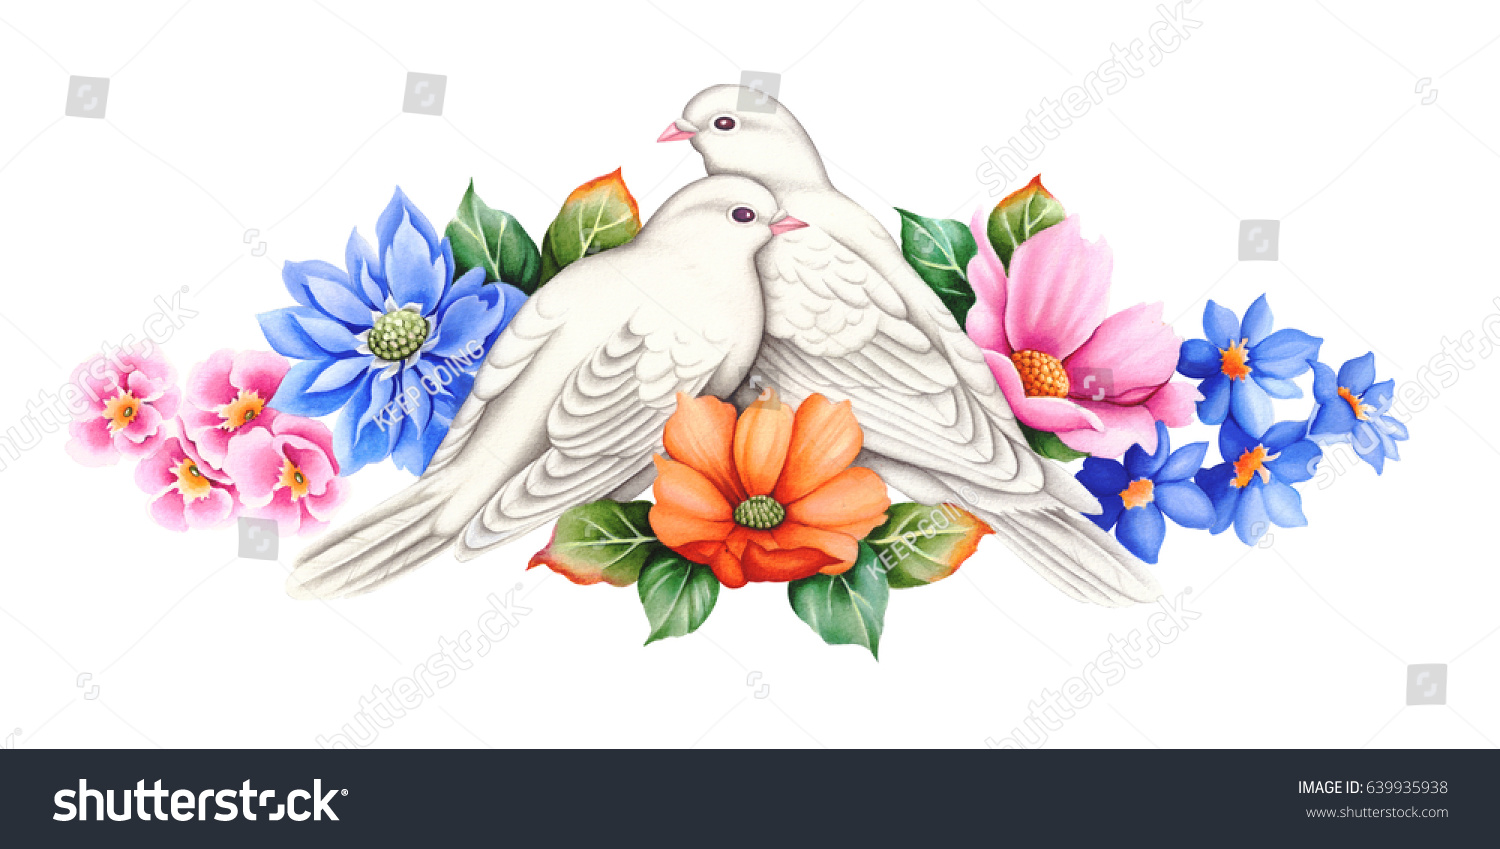 White dove couplehand drawn watercolor painting stock illustration white dove couplehand drawn watercolor painting on white background a symbol of peace biocorpaavc Image collections